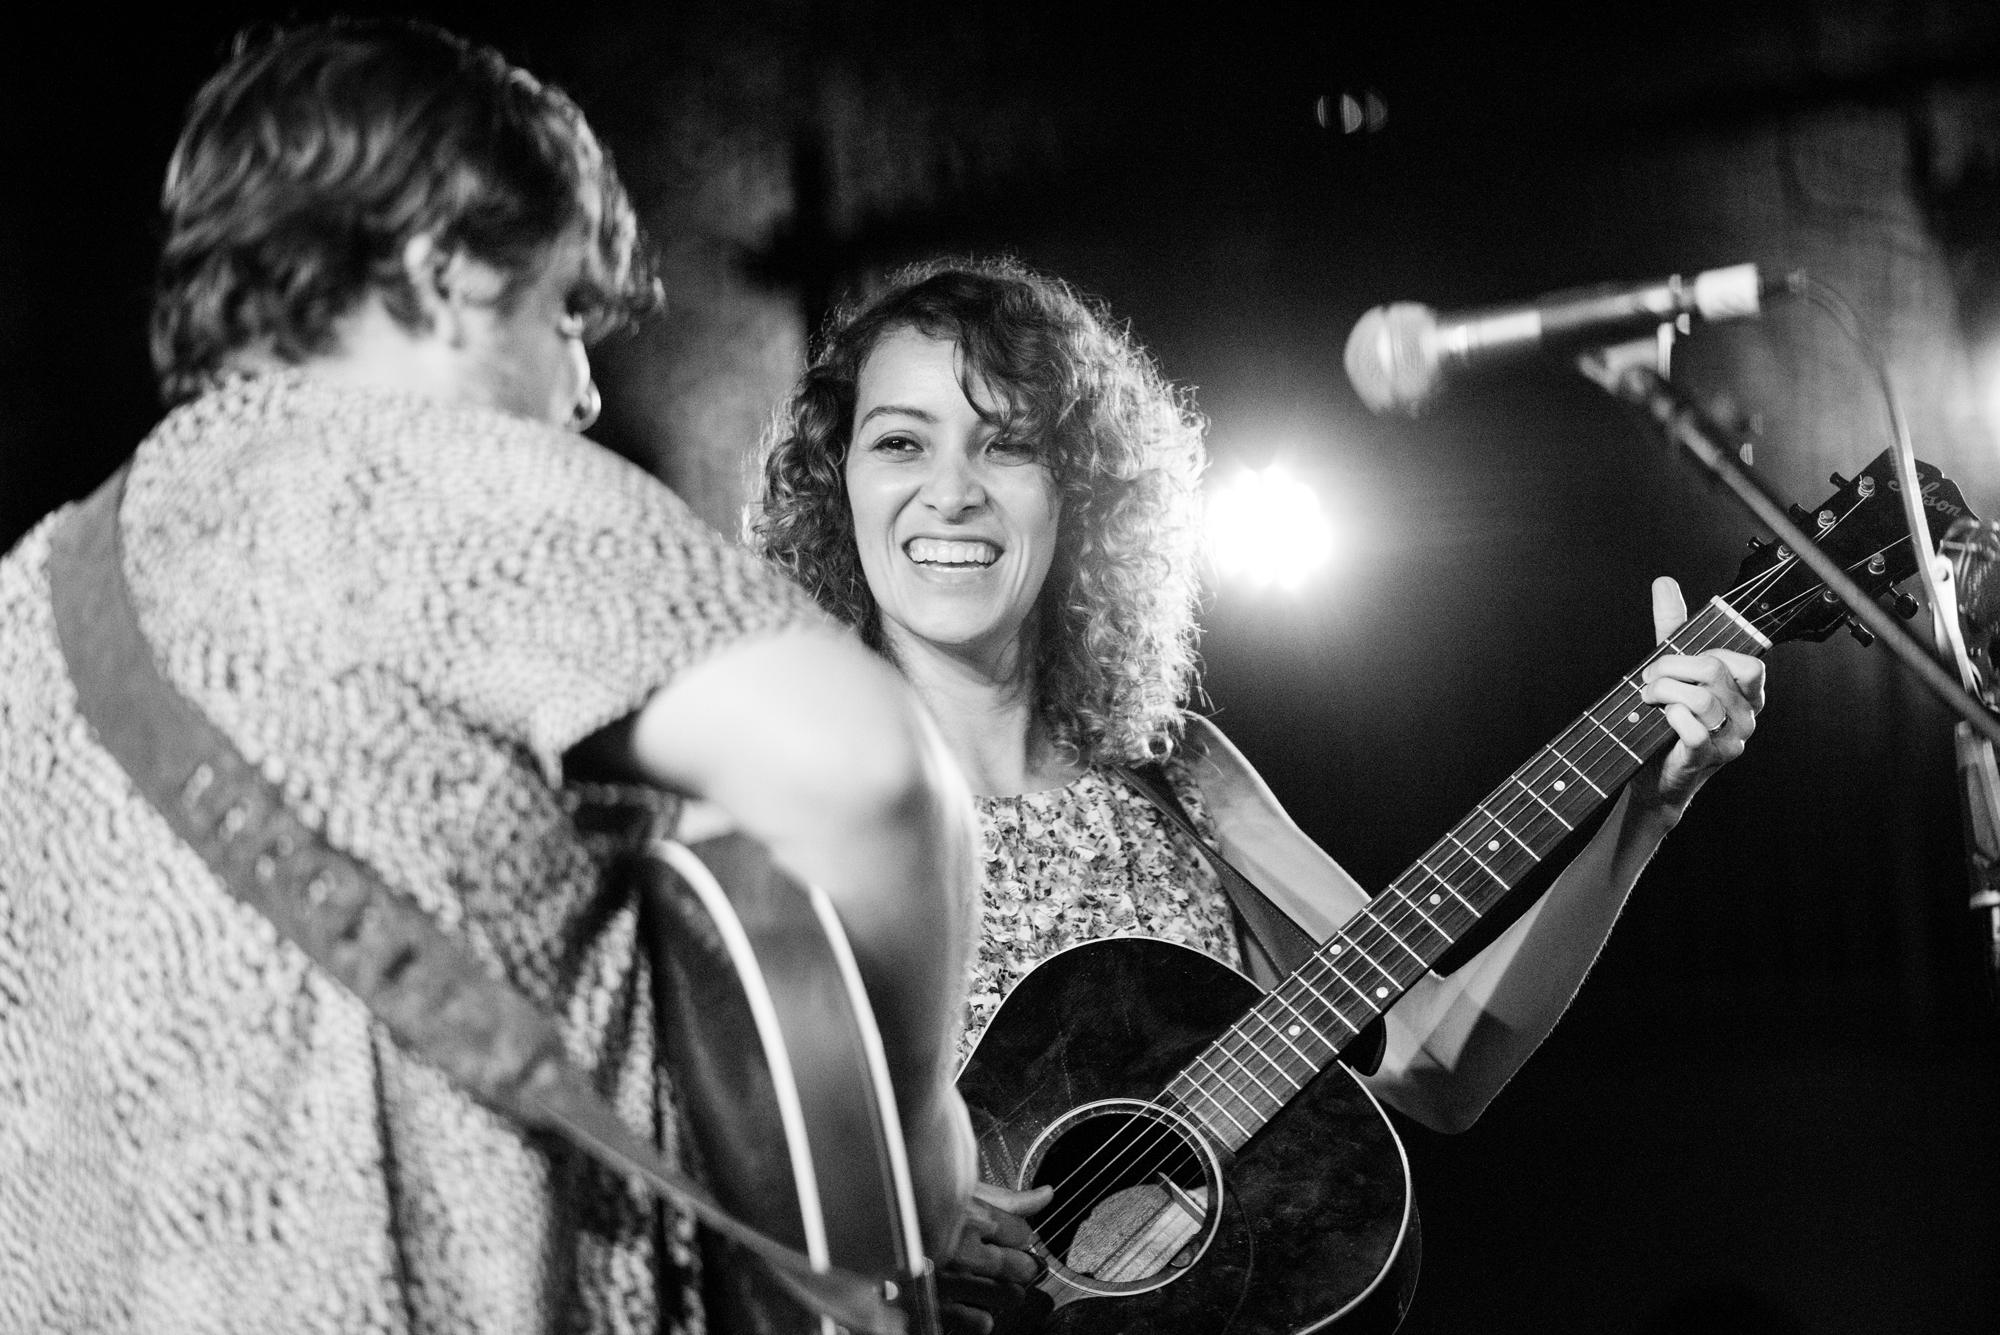 Sean Watkins and Gaby Moreno